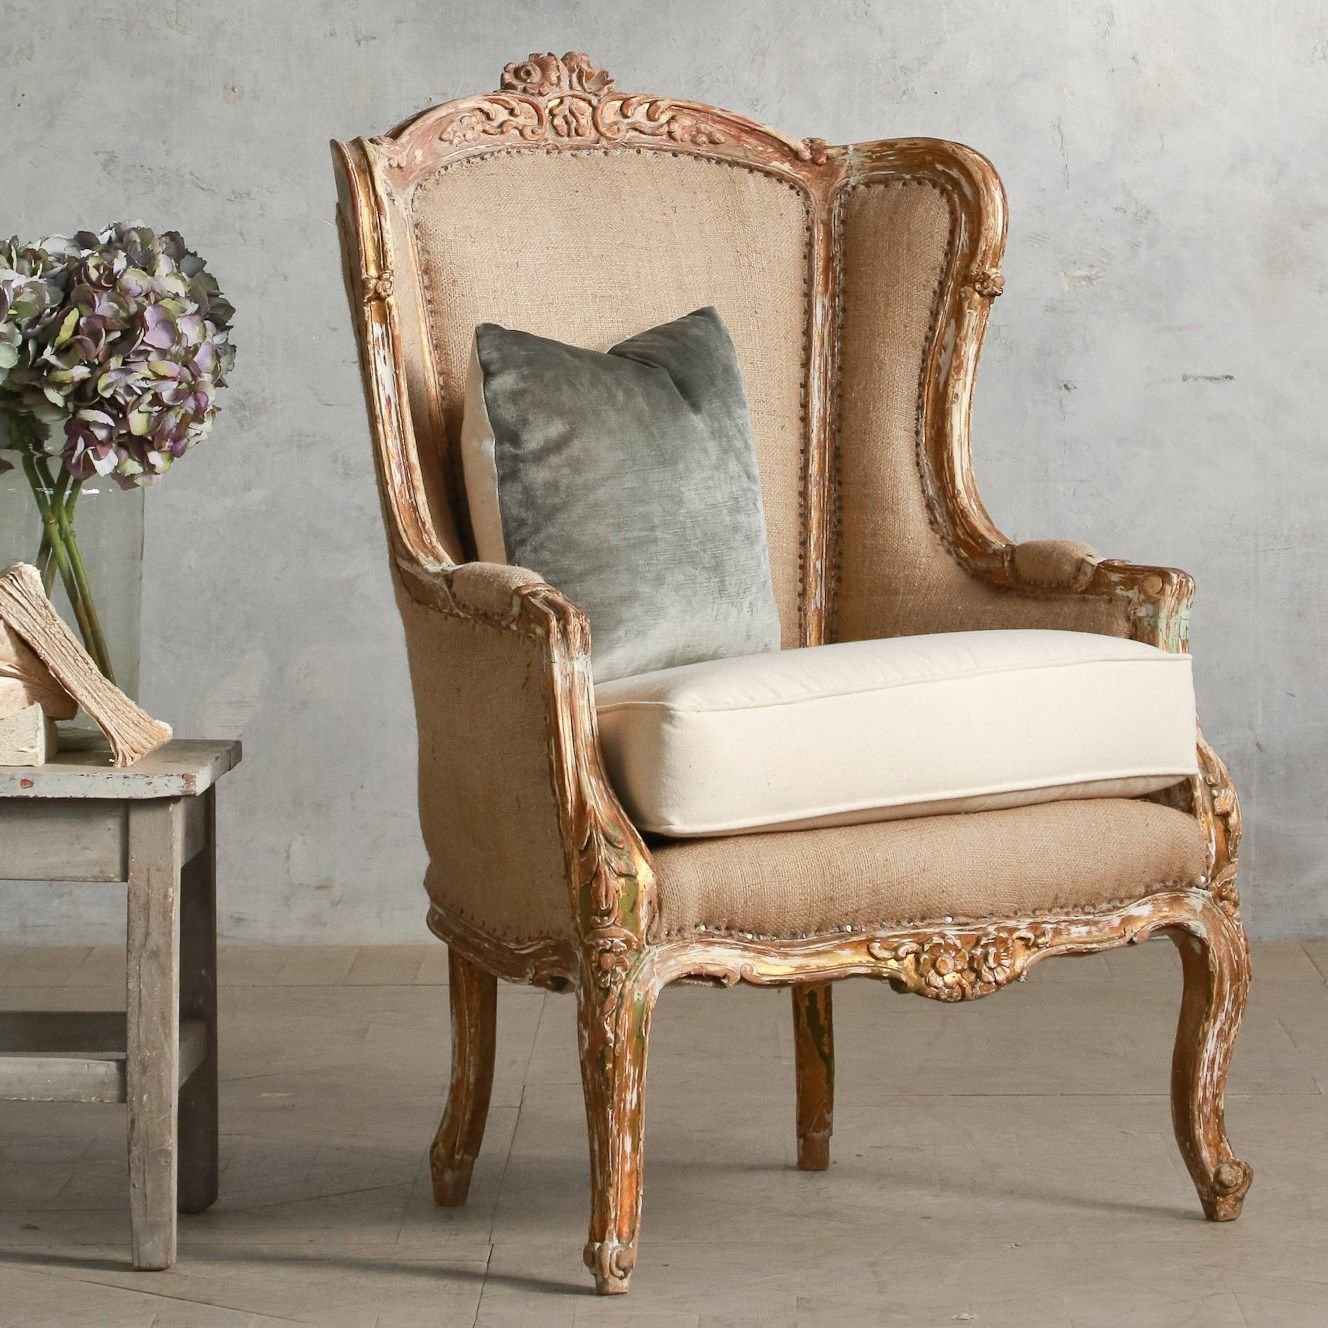 Eloquence One of a Kind Vintage Bergeres Louis XV Distressed Gold #laylagrayce